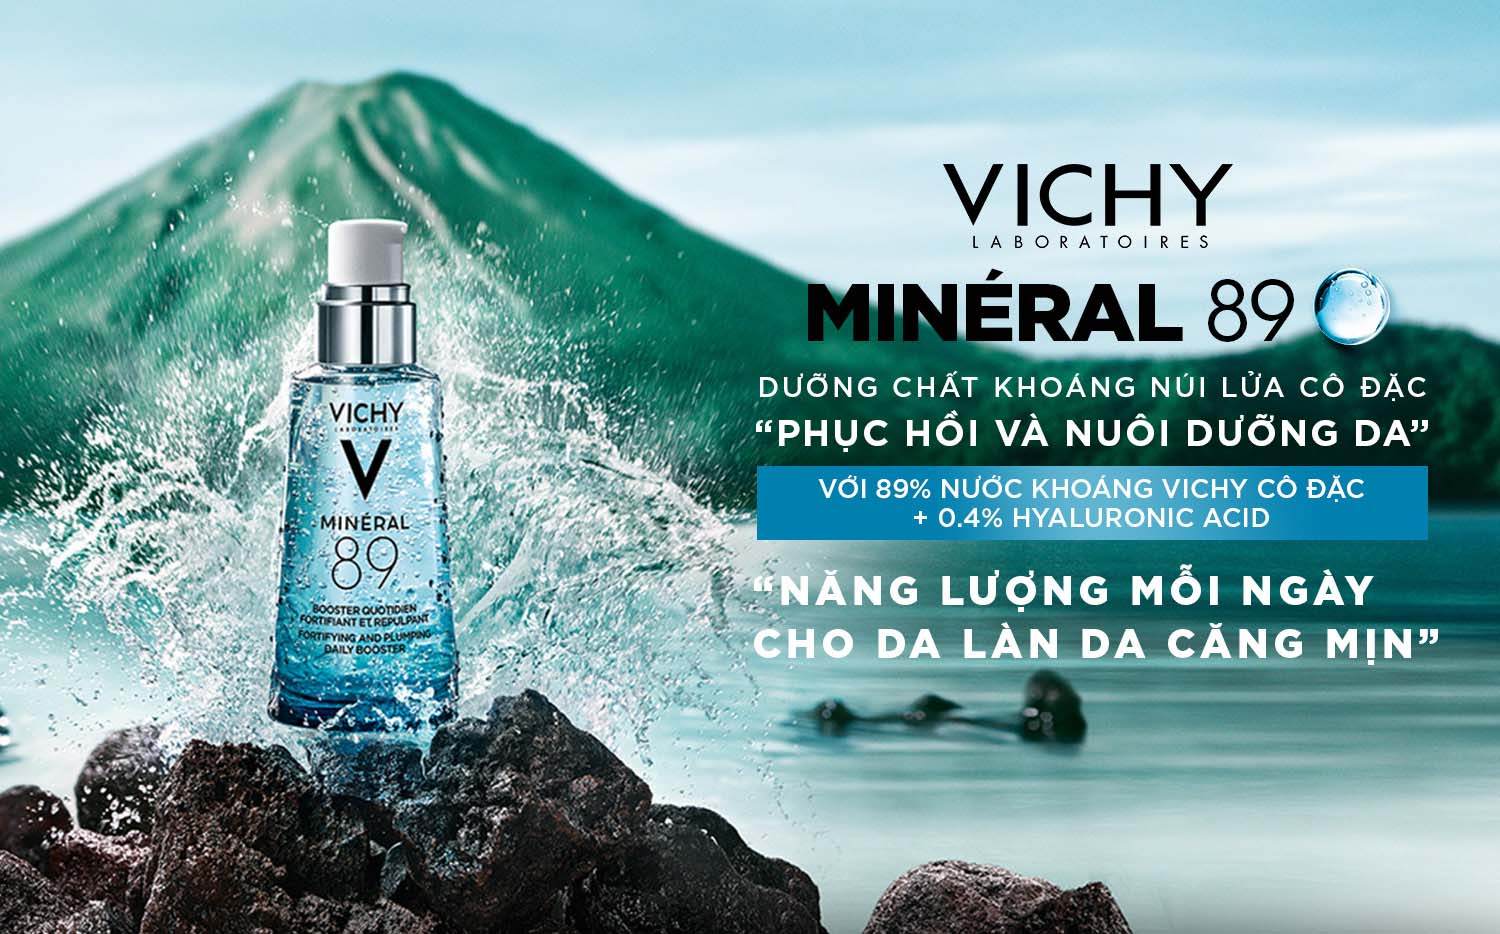 Serum Chứa Hyaluronic Acid